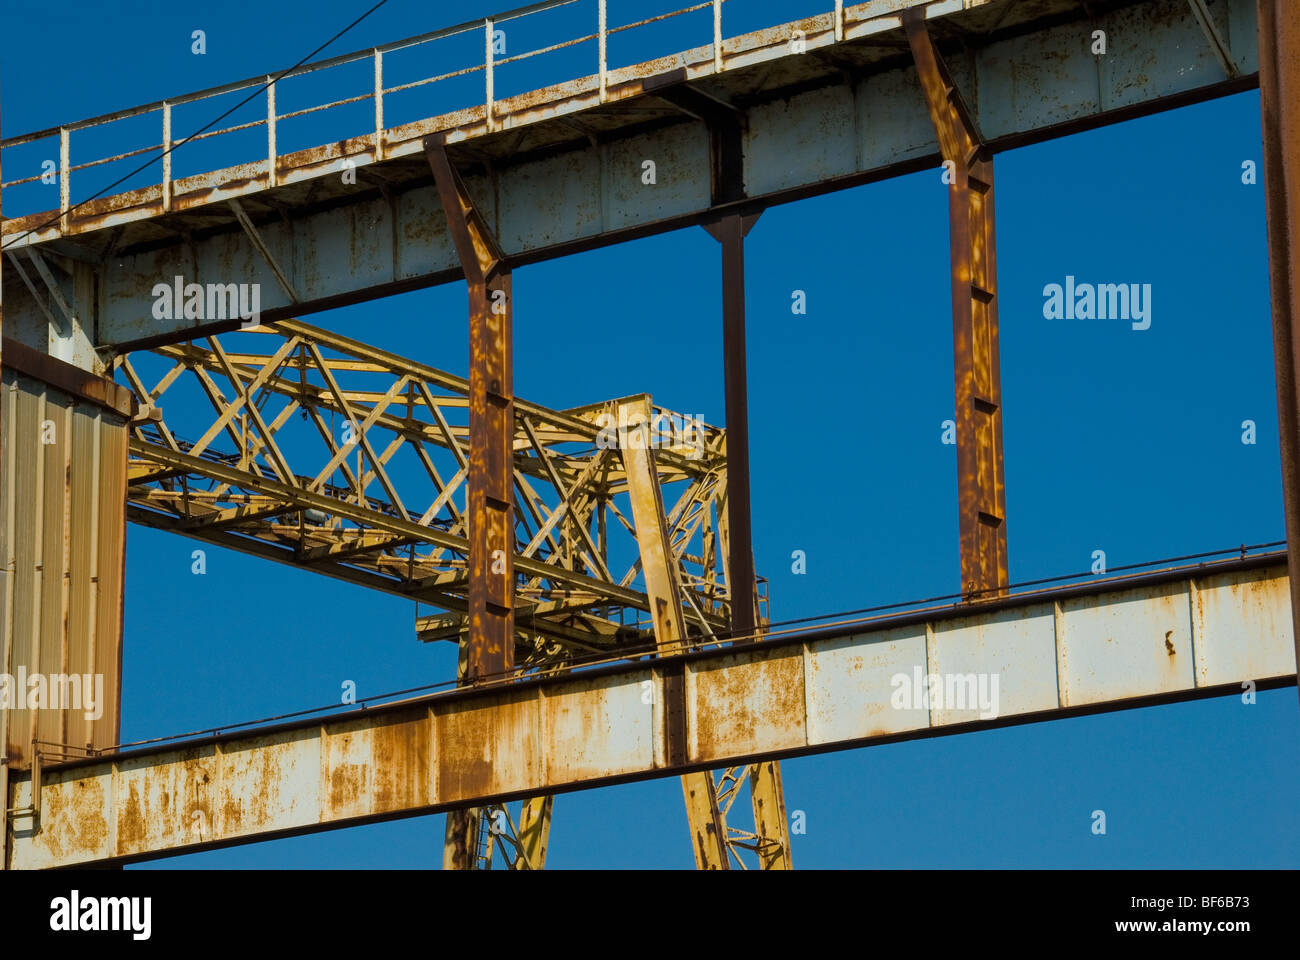 The steelwork of a crane in a disused boat yard in Savona Northern Italy - Stock Image